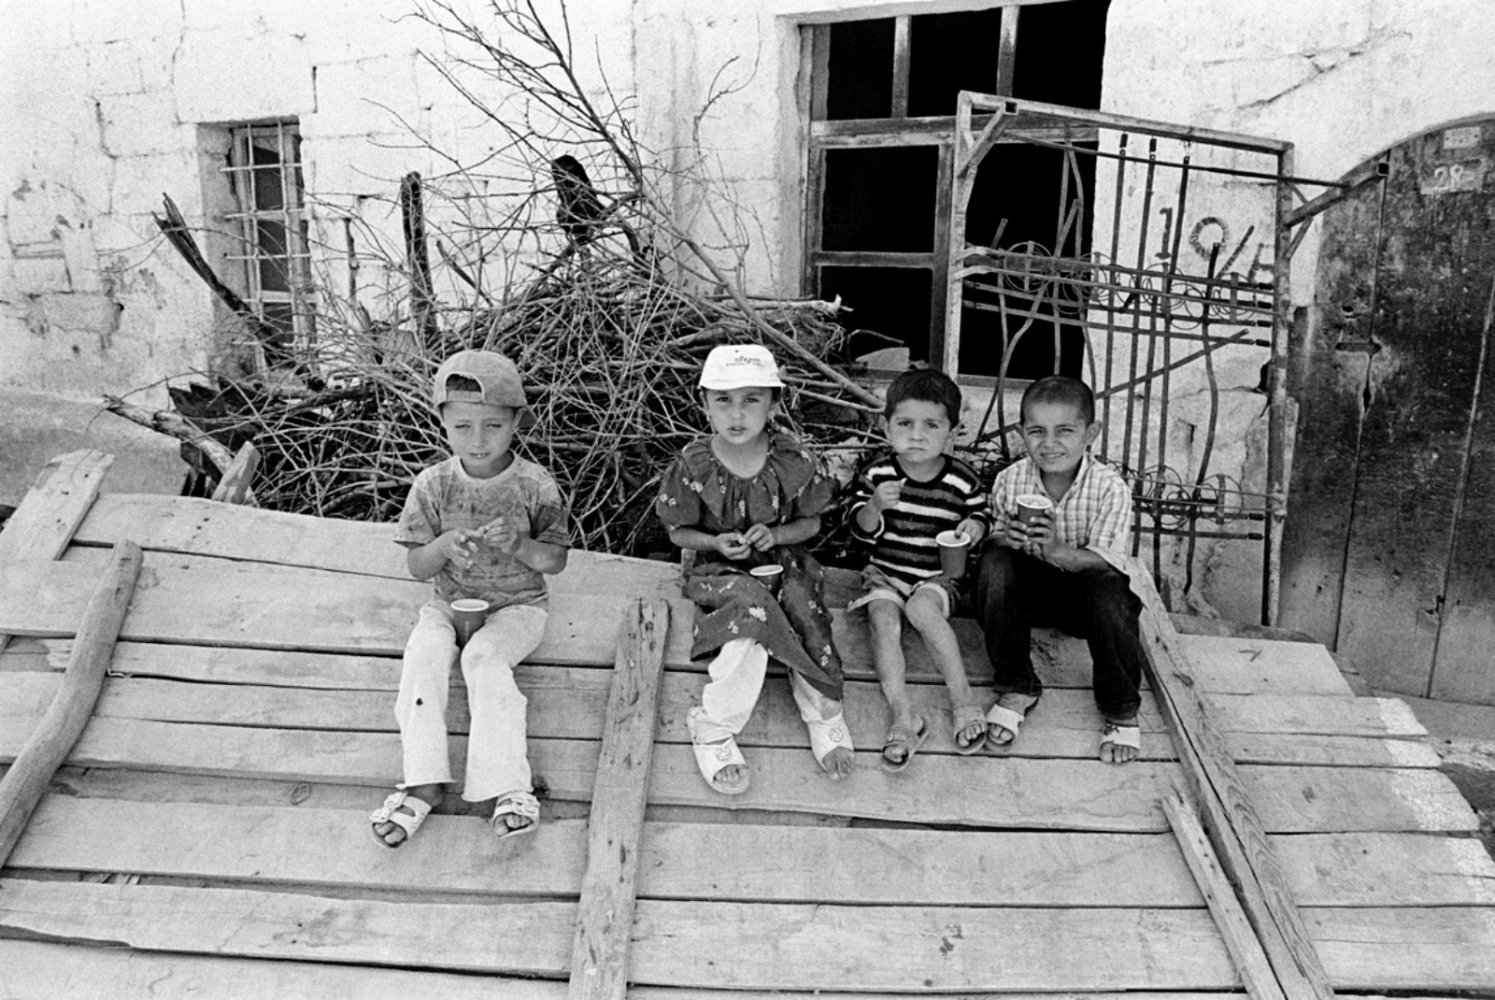 Children Sitting on Plank of Wood, Turkey, Summer 1997